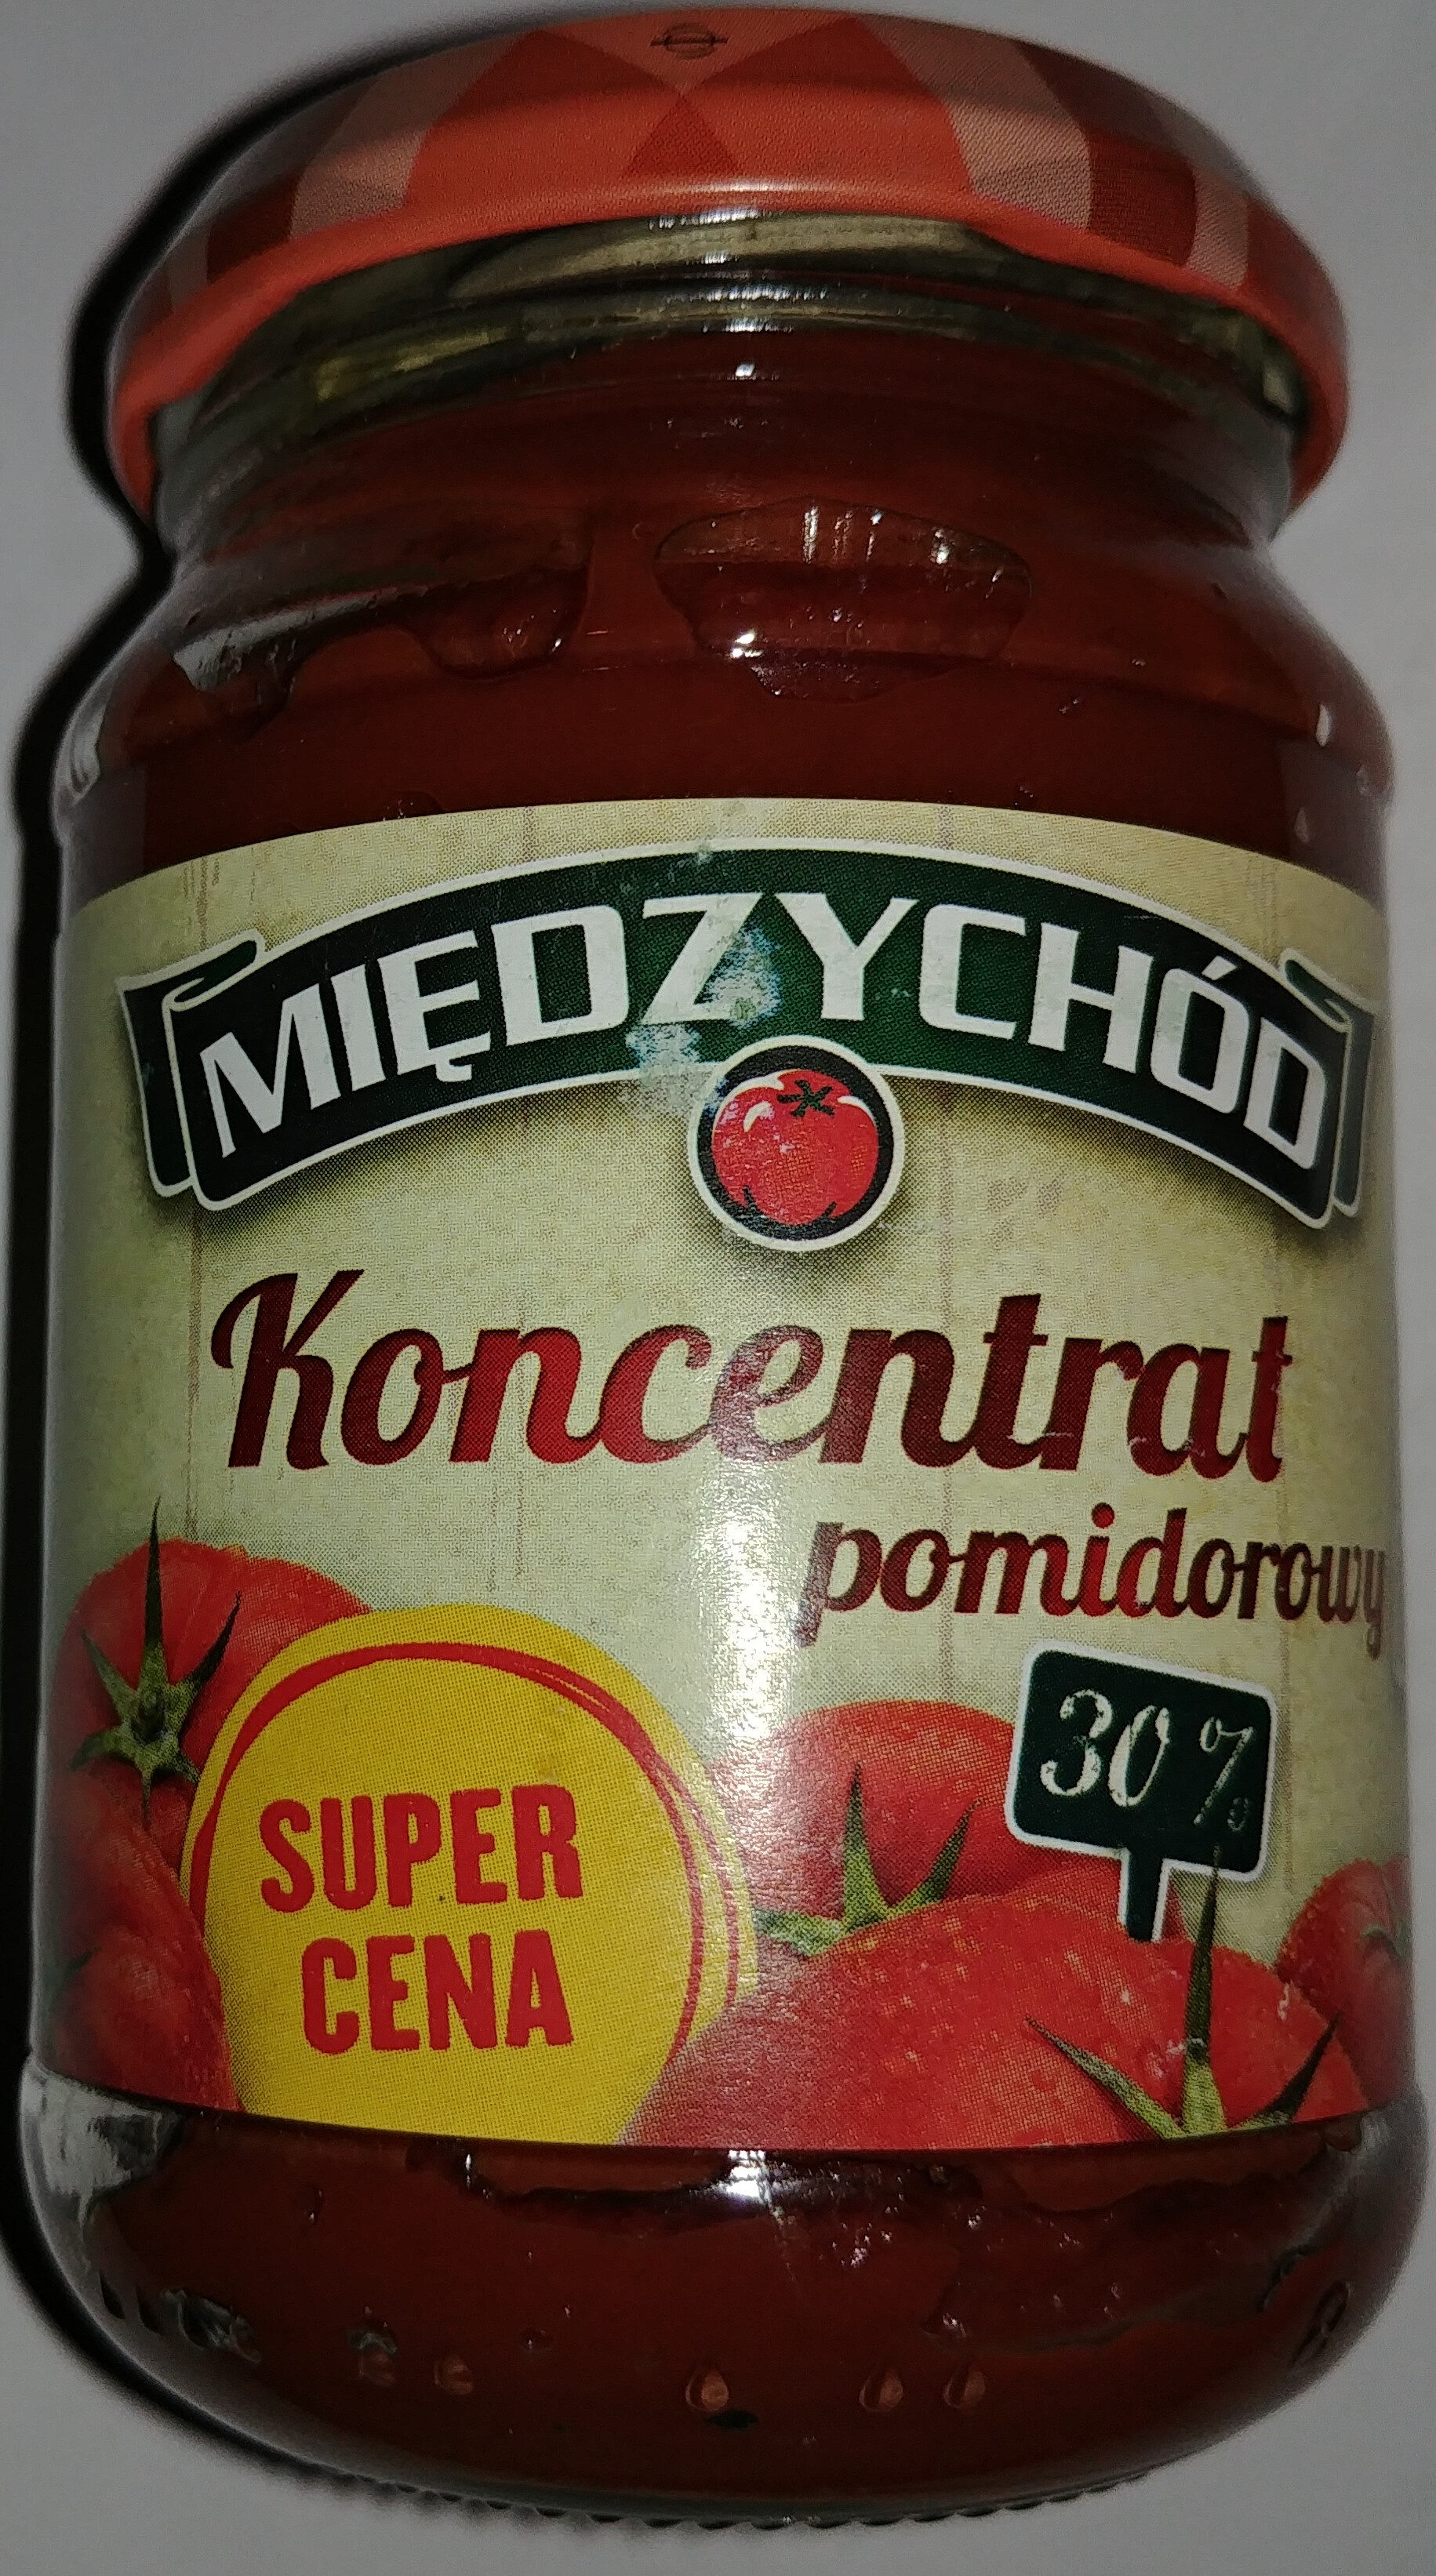 Koncentrat pomidorowy 30% - Product - pl